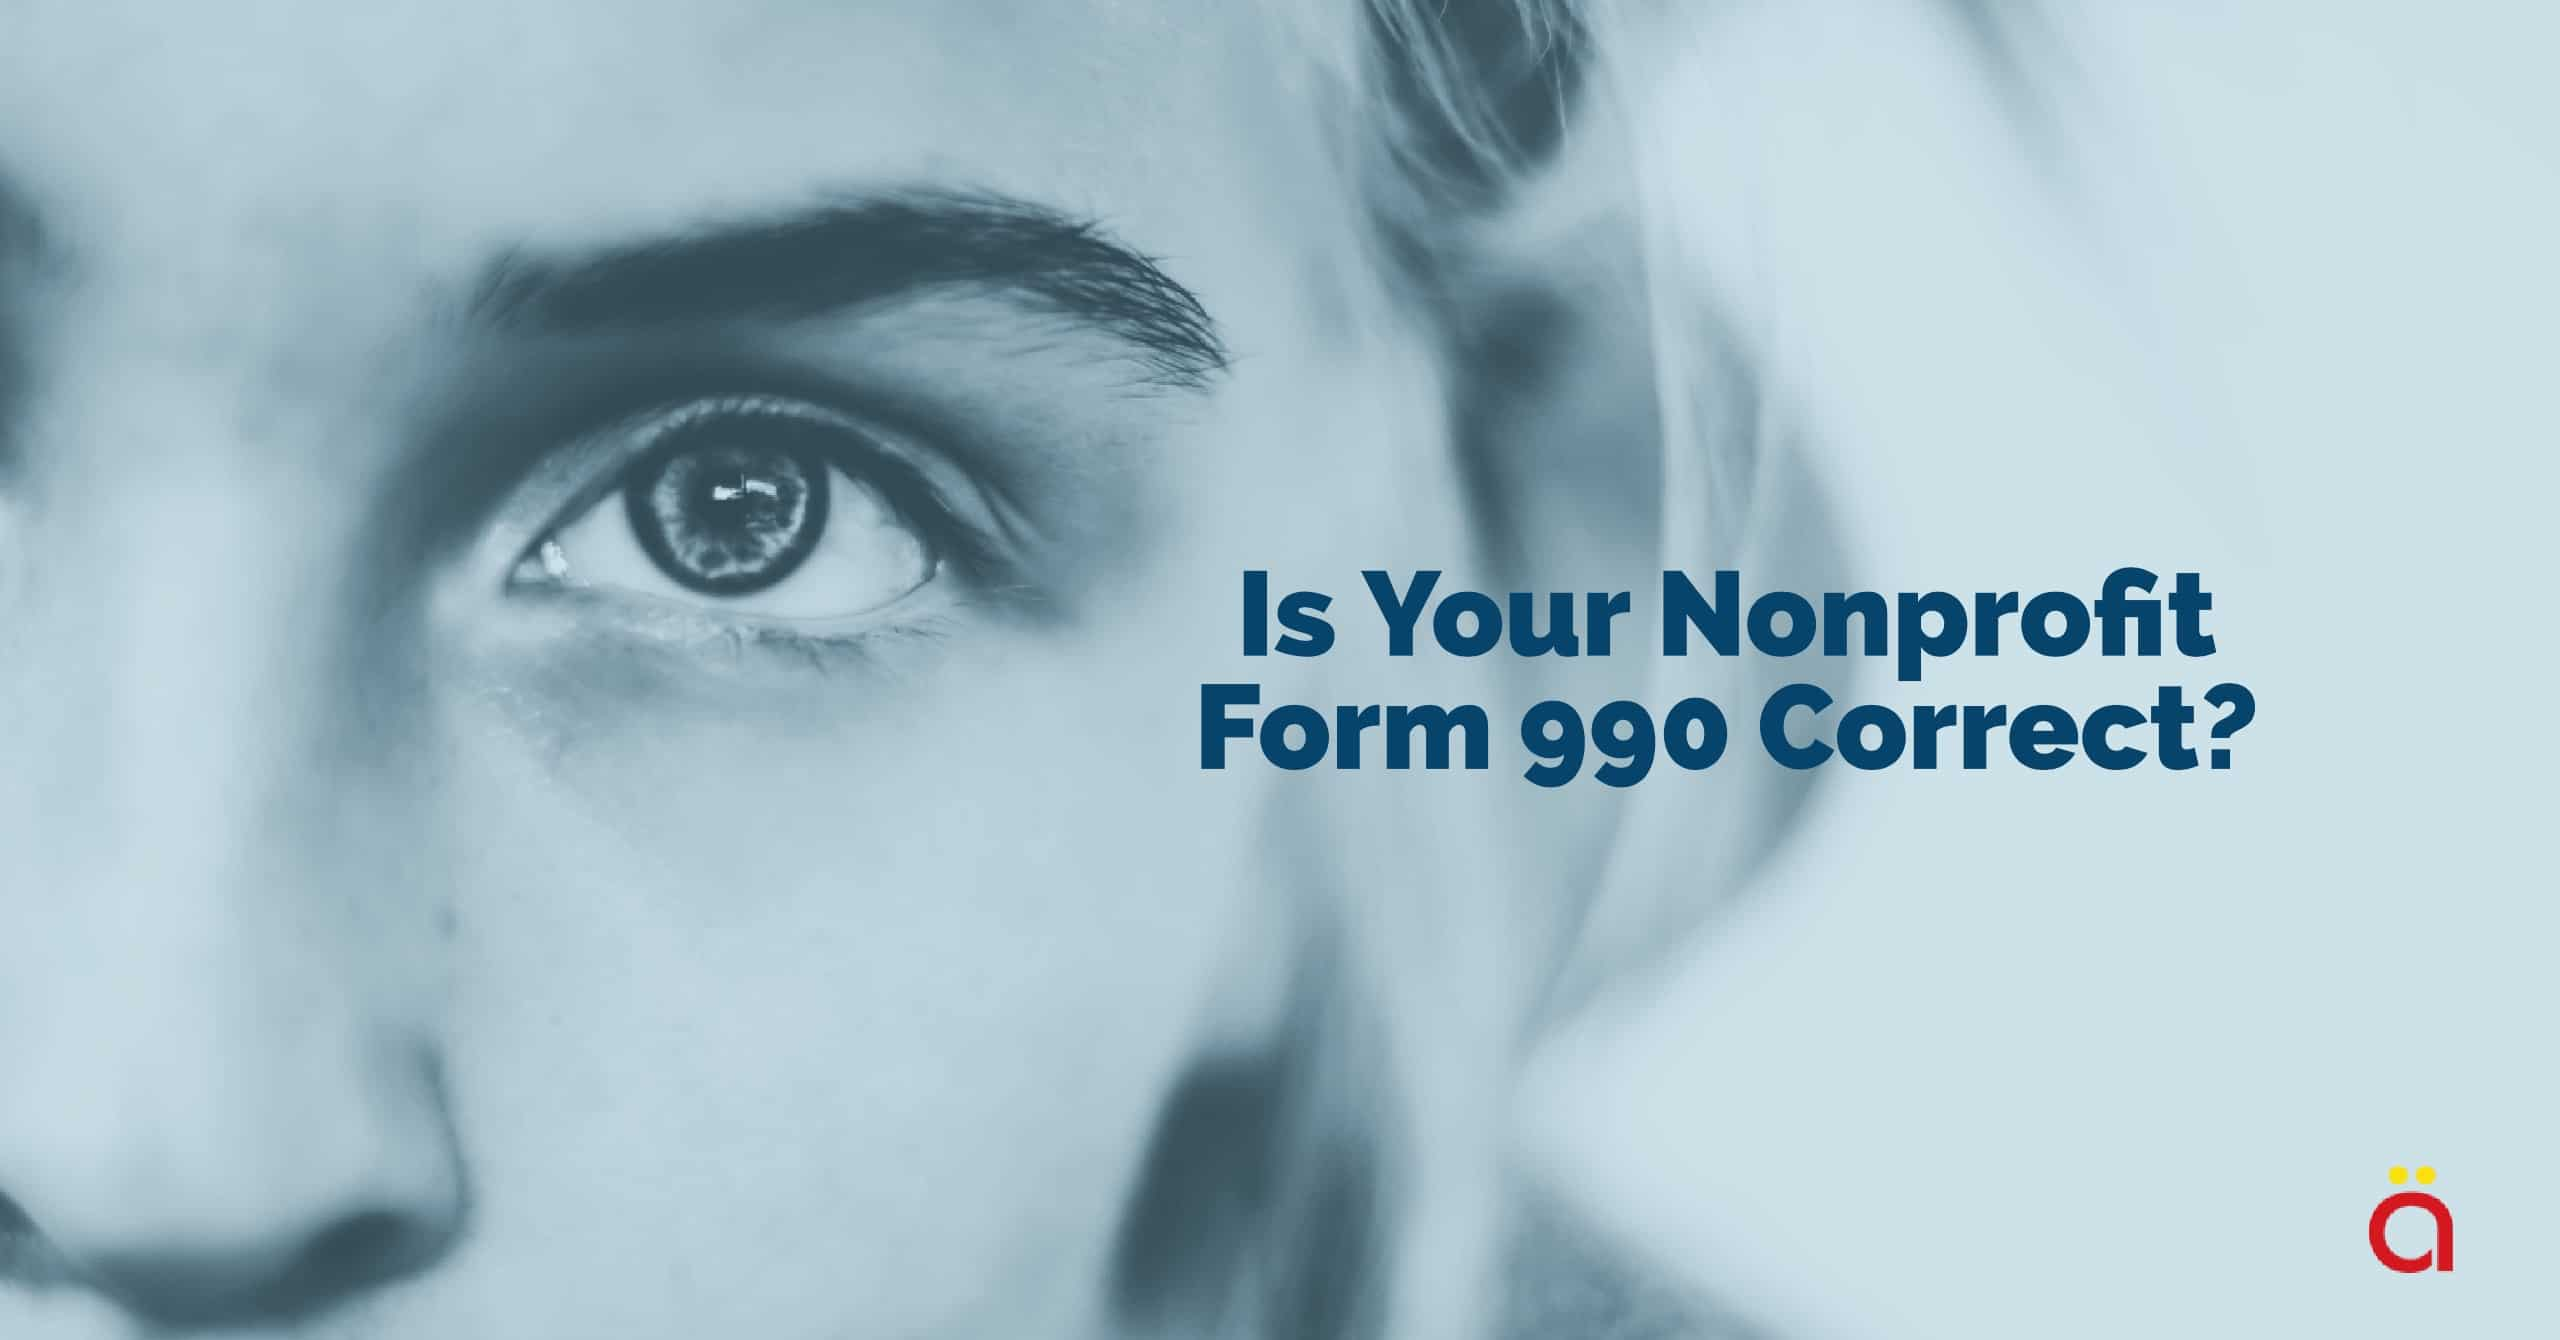 Nonprofit Form 990: Important Facts Necessary for Filing